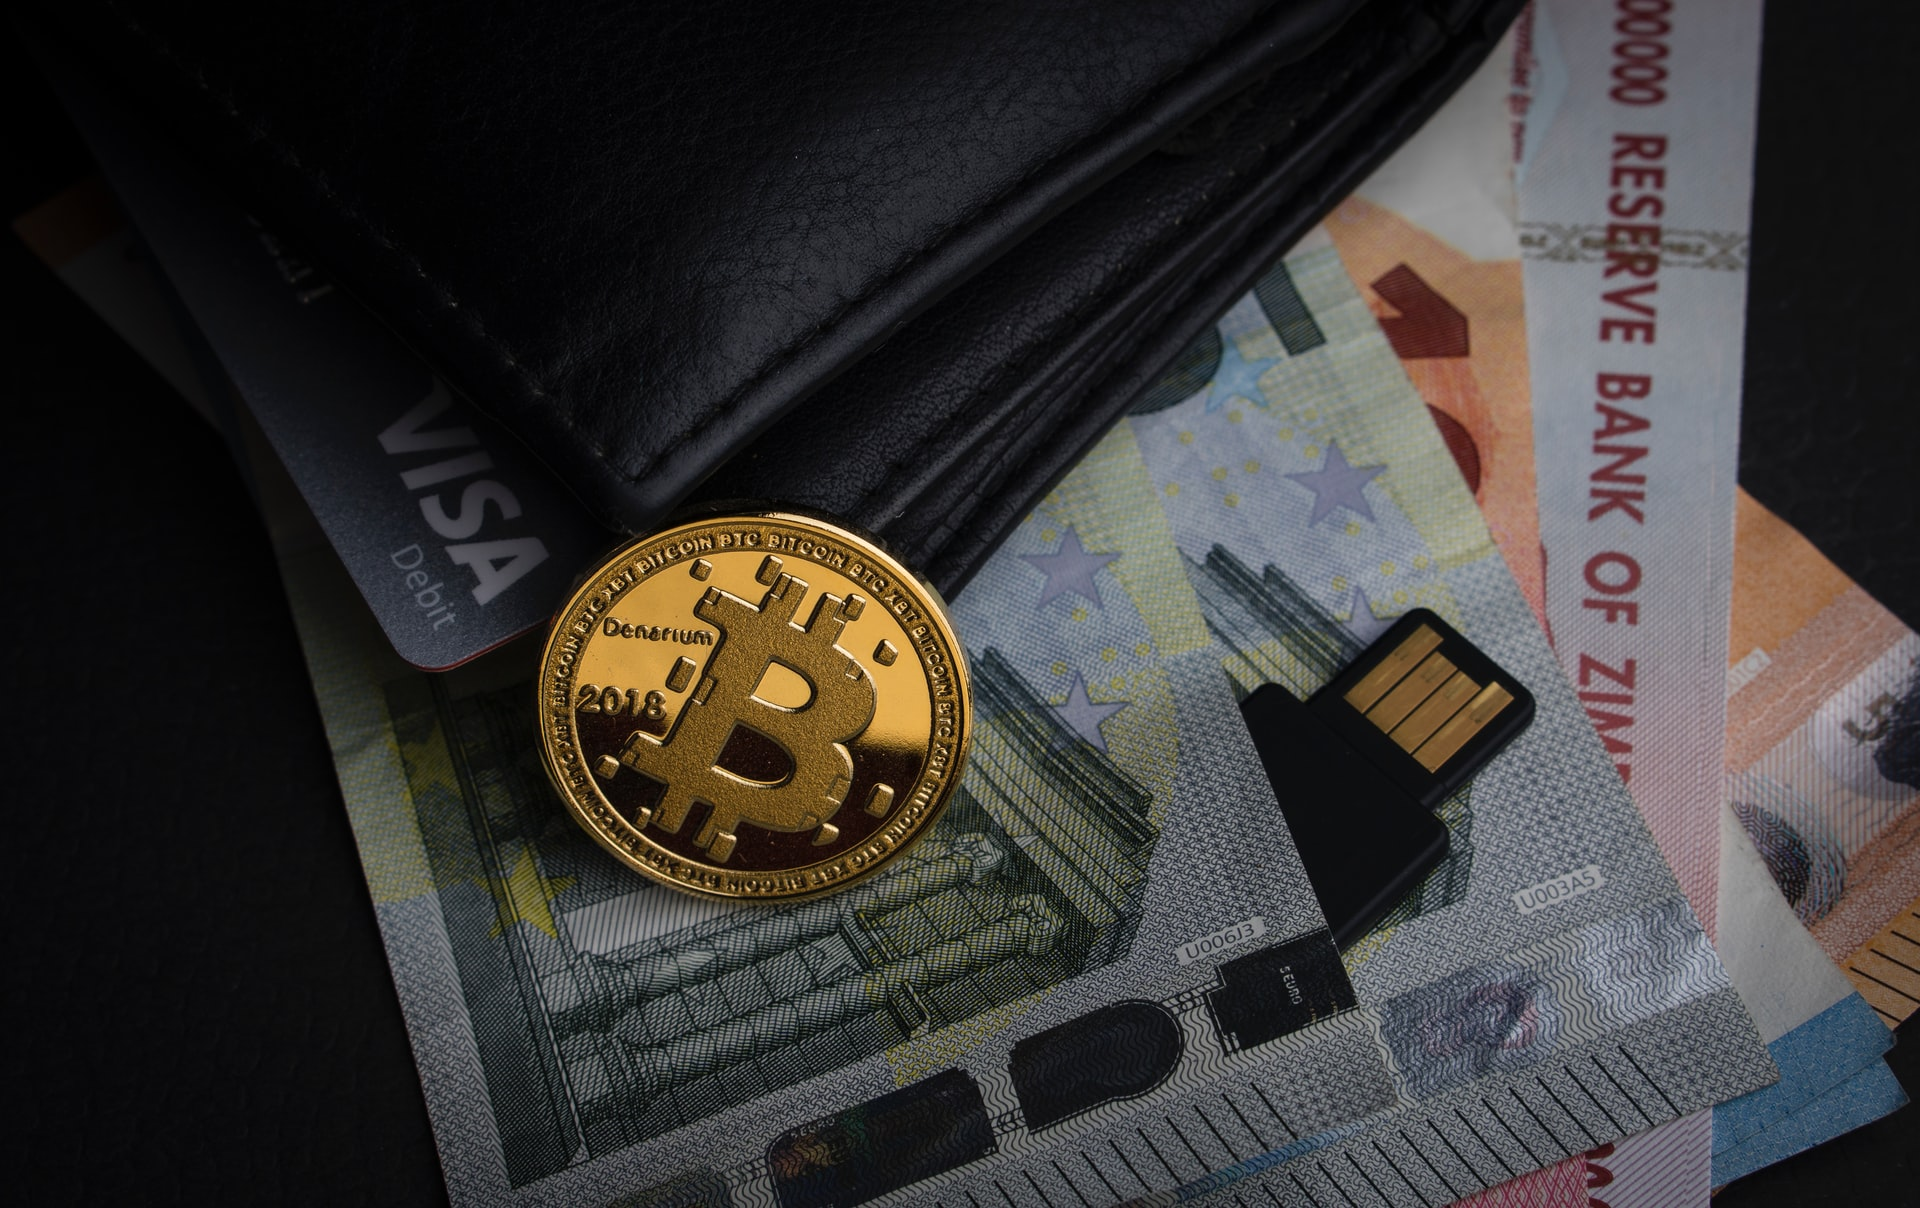 Wallet with money and a bitcoin